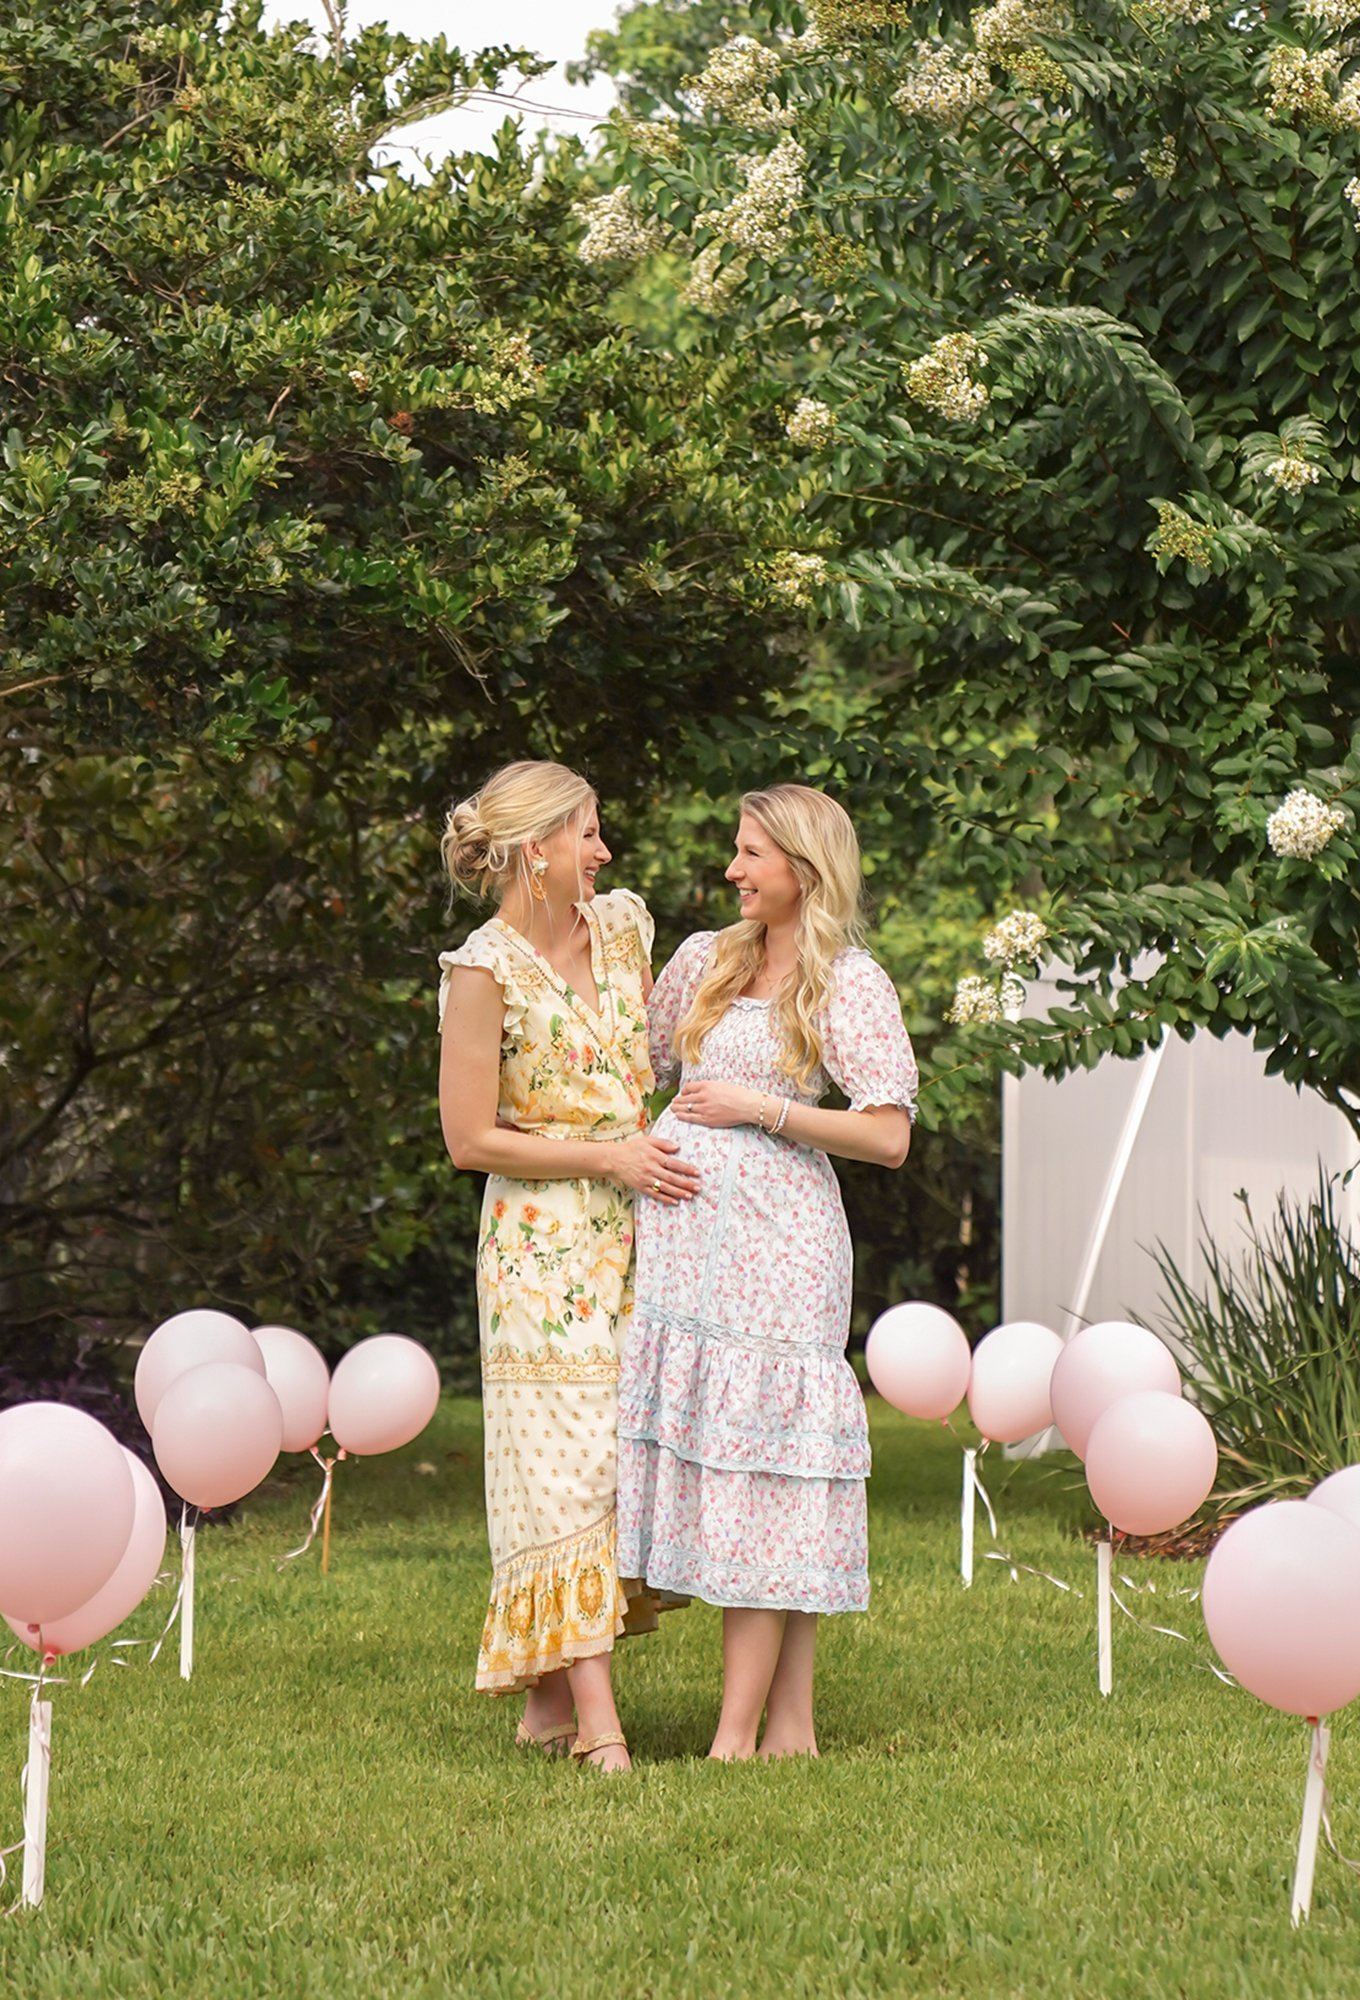 Ashley Brooke and Sister Kyla at her social distancing baby shower